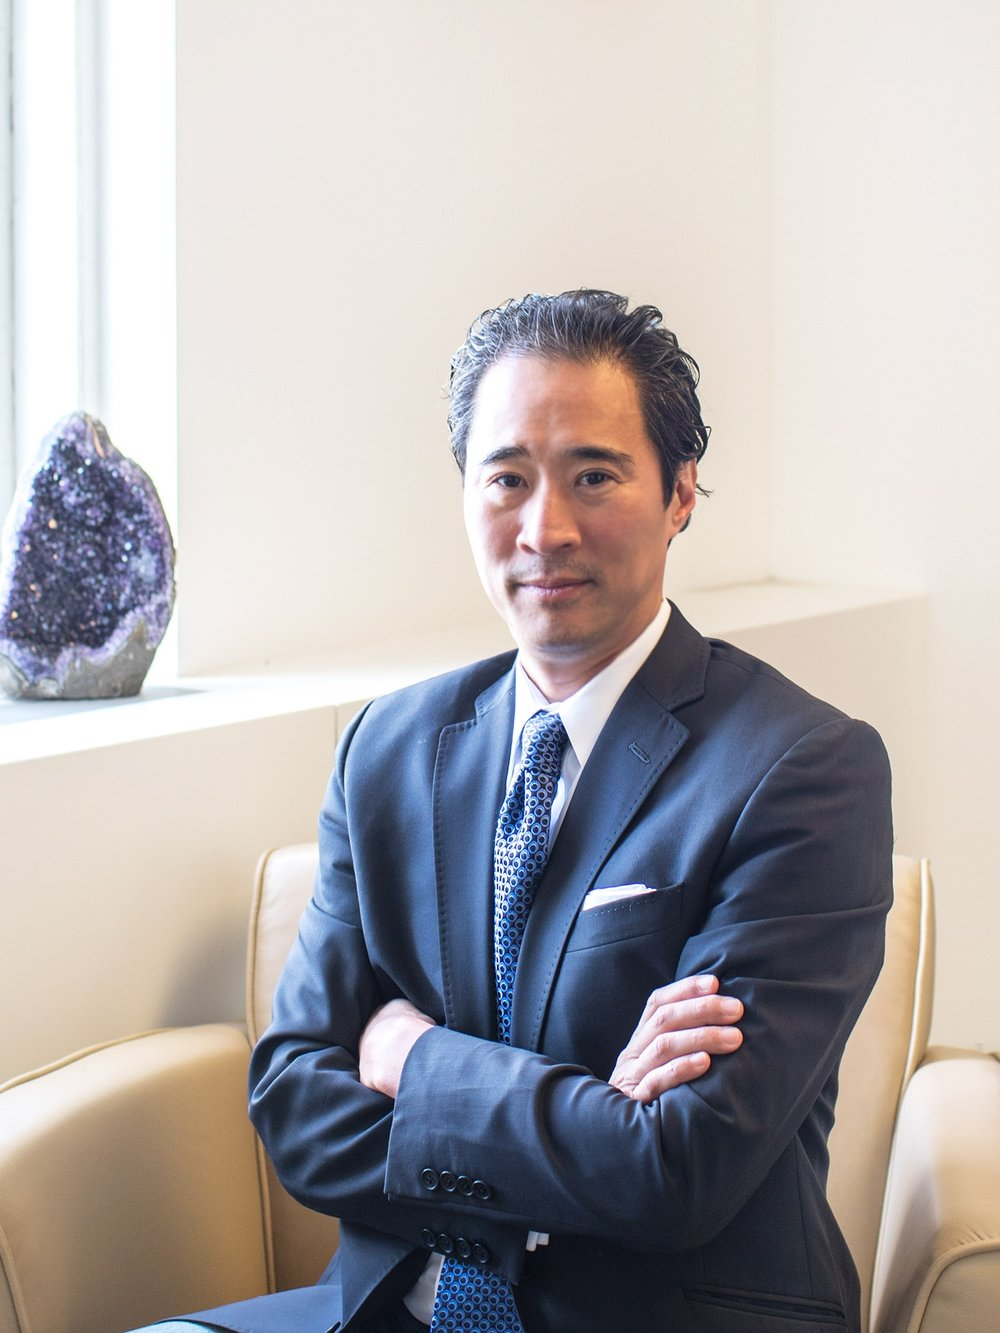 Sam Suzuki - CEO Of Suzuki Capital. Professional experience of thirty years doing work out for businesses, real estate developers and banks. Prime experience in litigation, foreclosures, bankruptcy, lease negotiations and designing financial and strategic work out plans. Secondary experience in residential condominium development in Manhattan, NYC. Built several condominium projects from ground up construction to gut rehabs. Most notable projects are Clement Clarke Condominium, Loft 14, and Number 5 Condominium. Real Estate assemblage for the Dillon Hotel, Hildona Court, Red Roof Inn, and AHG Hotel Group.